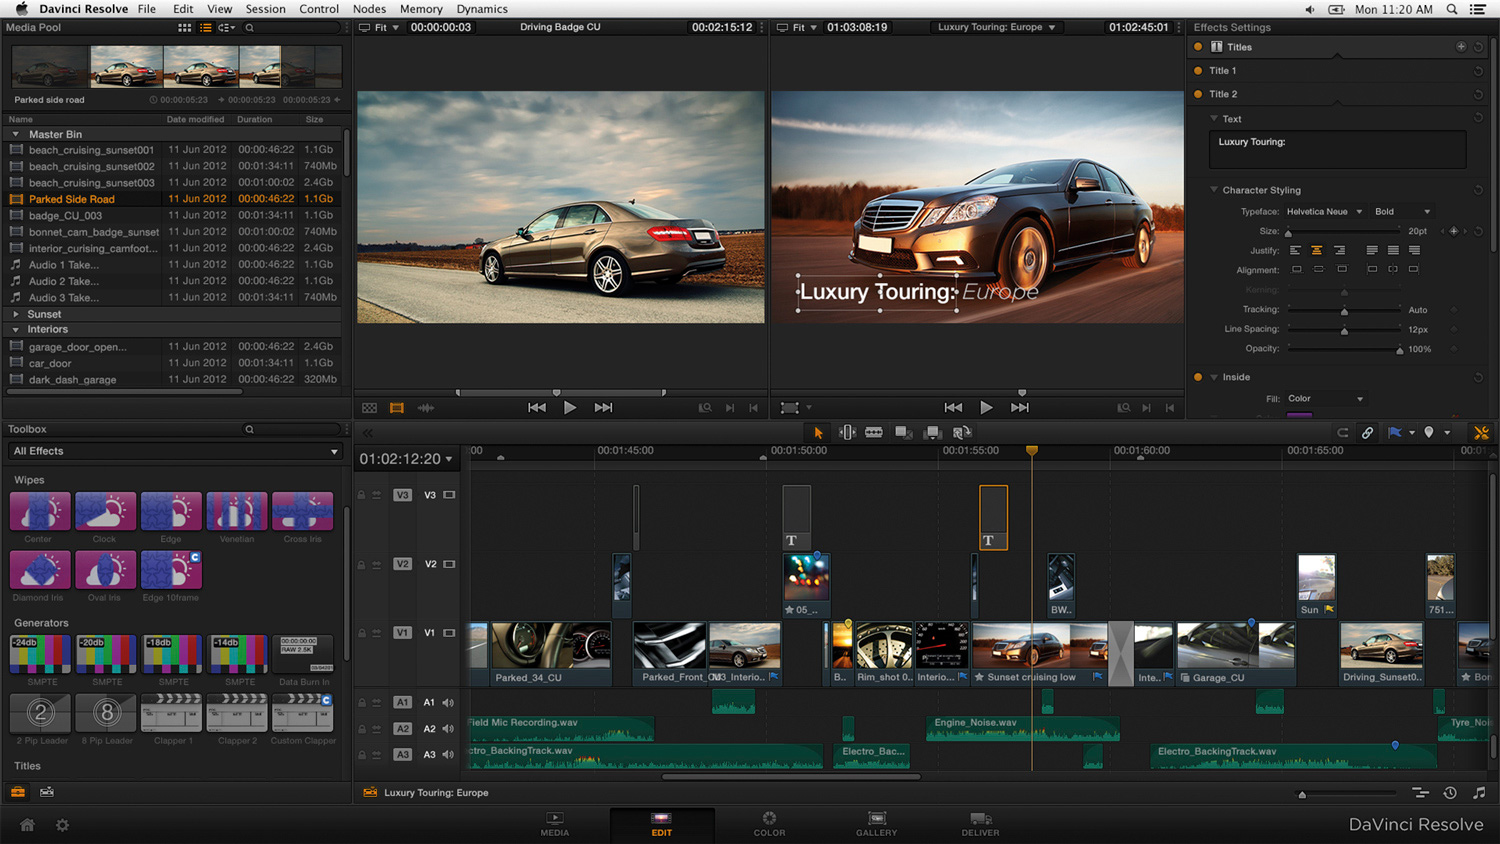 Davinci resolve editing software